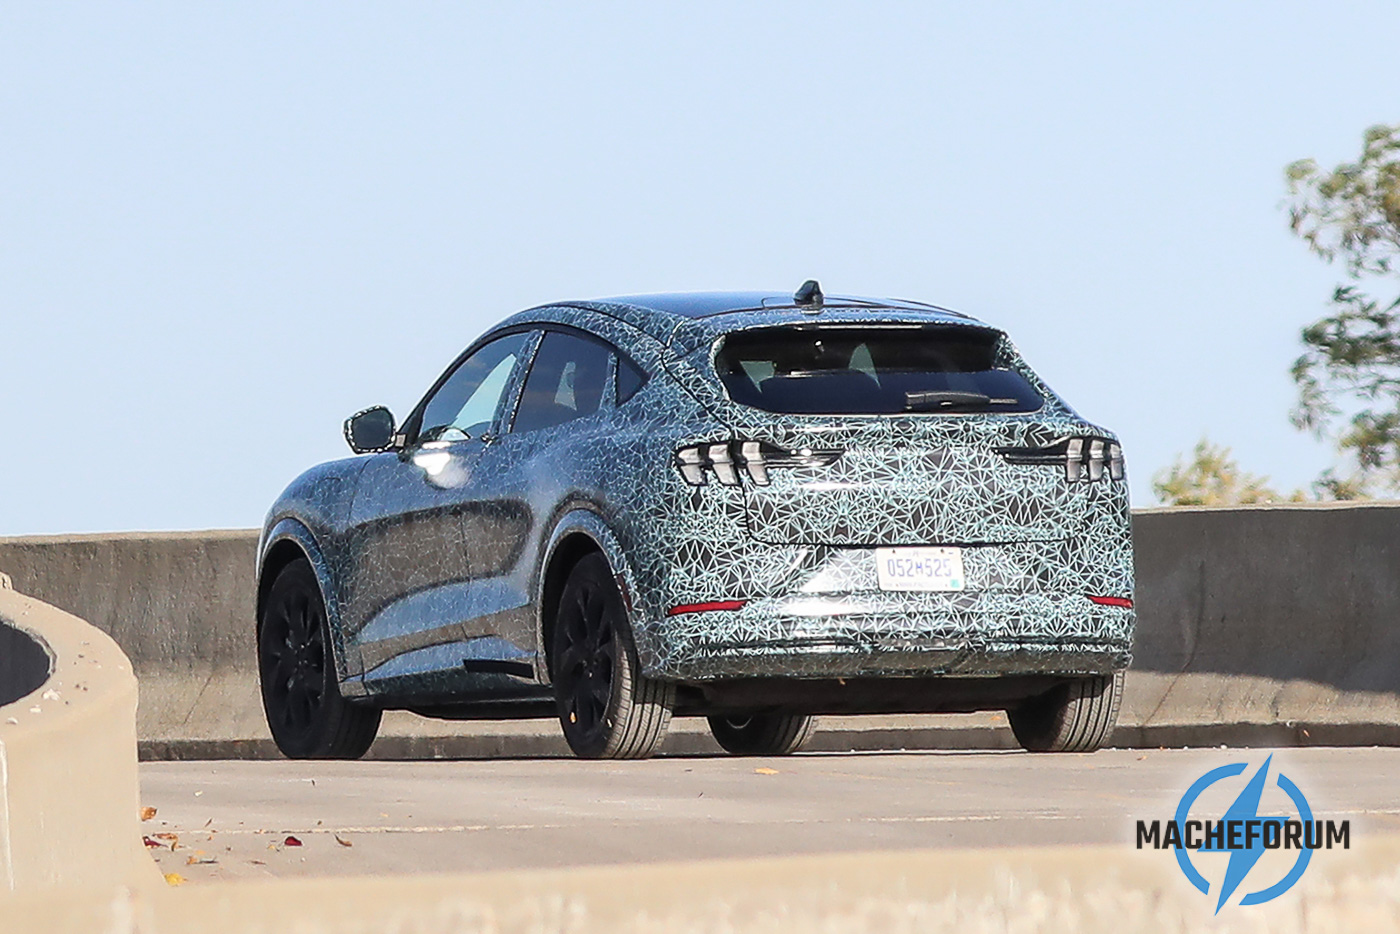 2020-Ford-Mach-E-Battery-Electric-Mustang-Inspired-SUV-First-Look-9.jpg